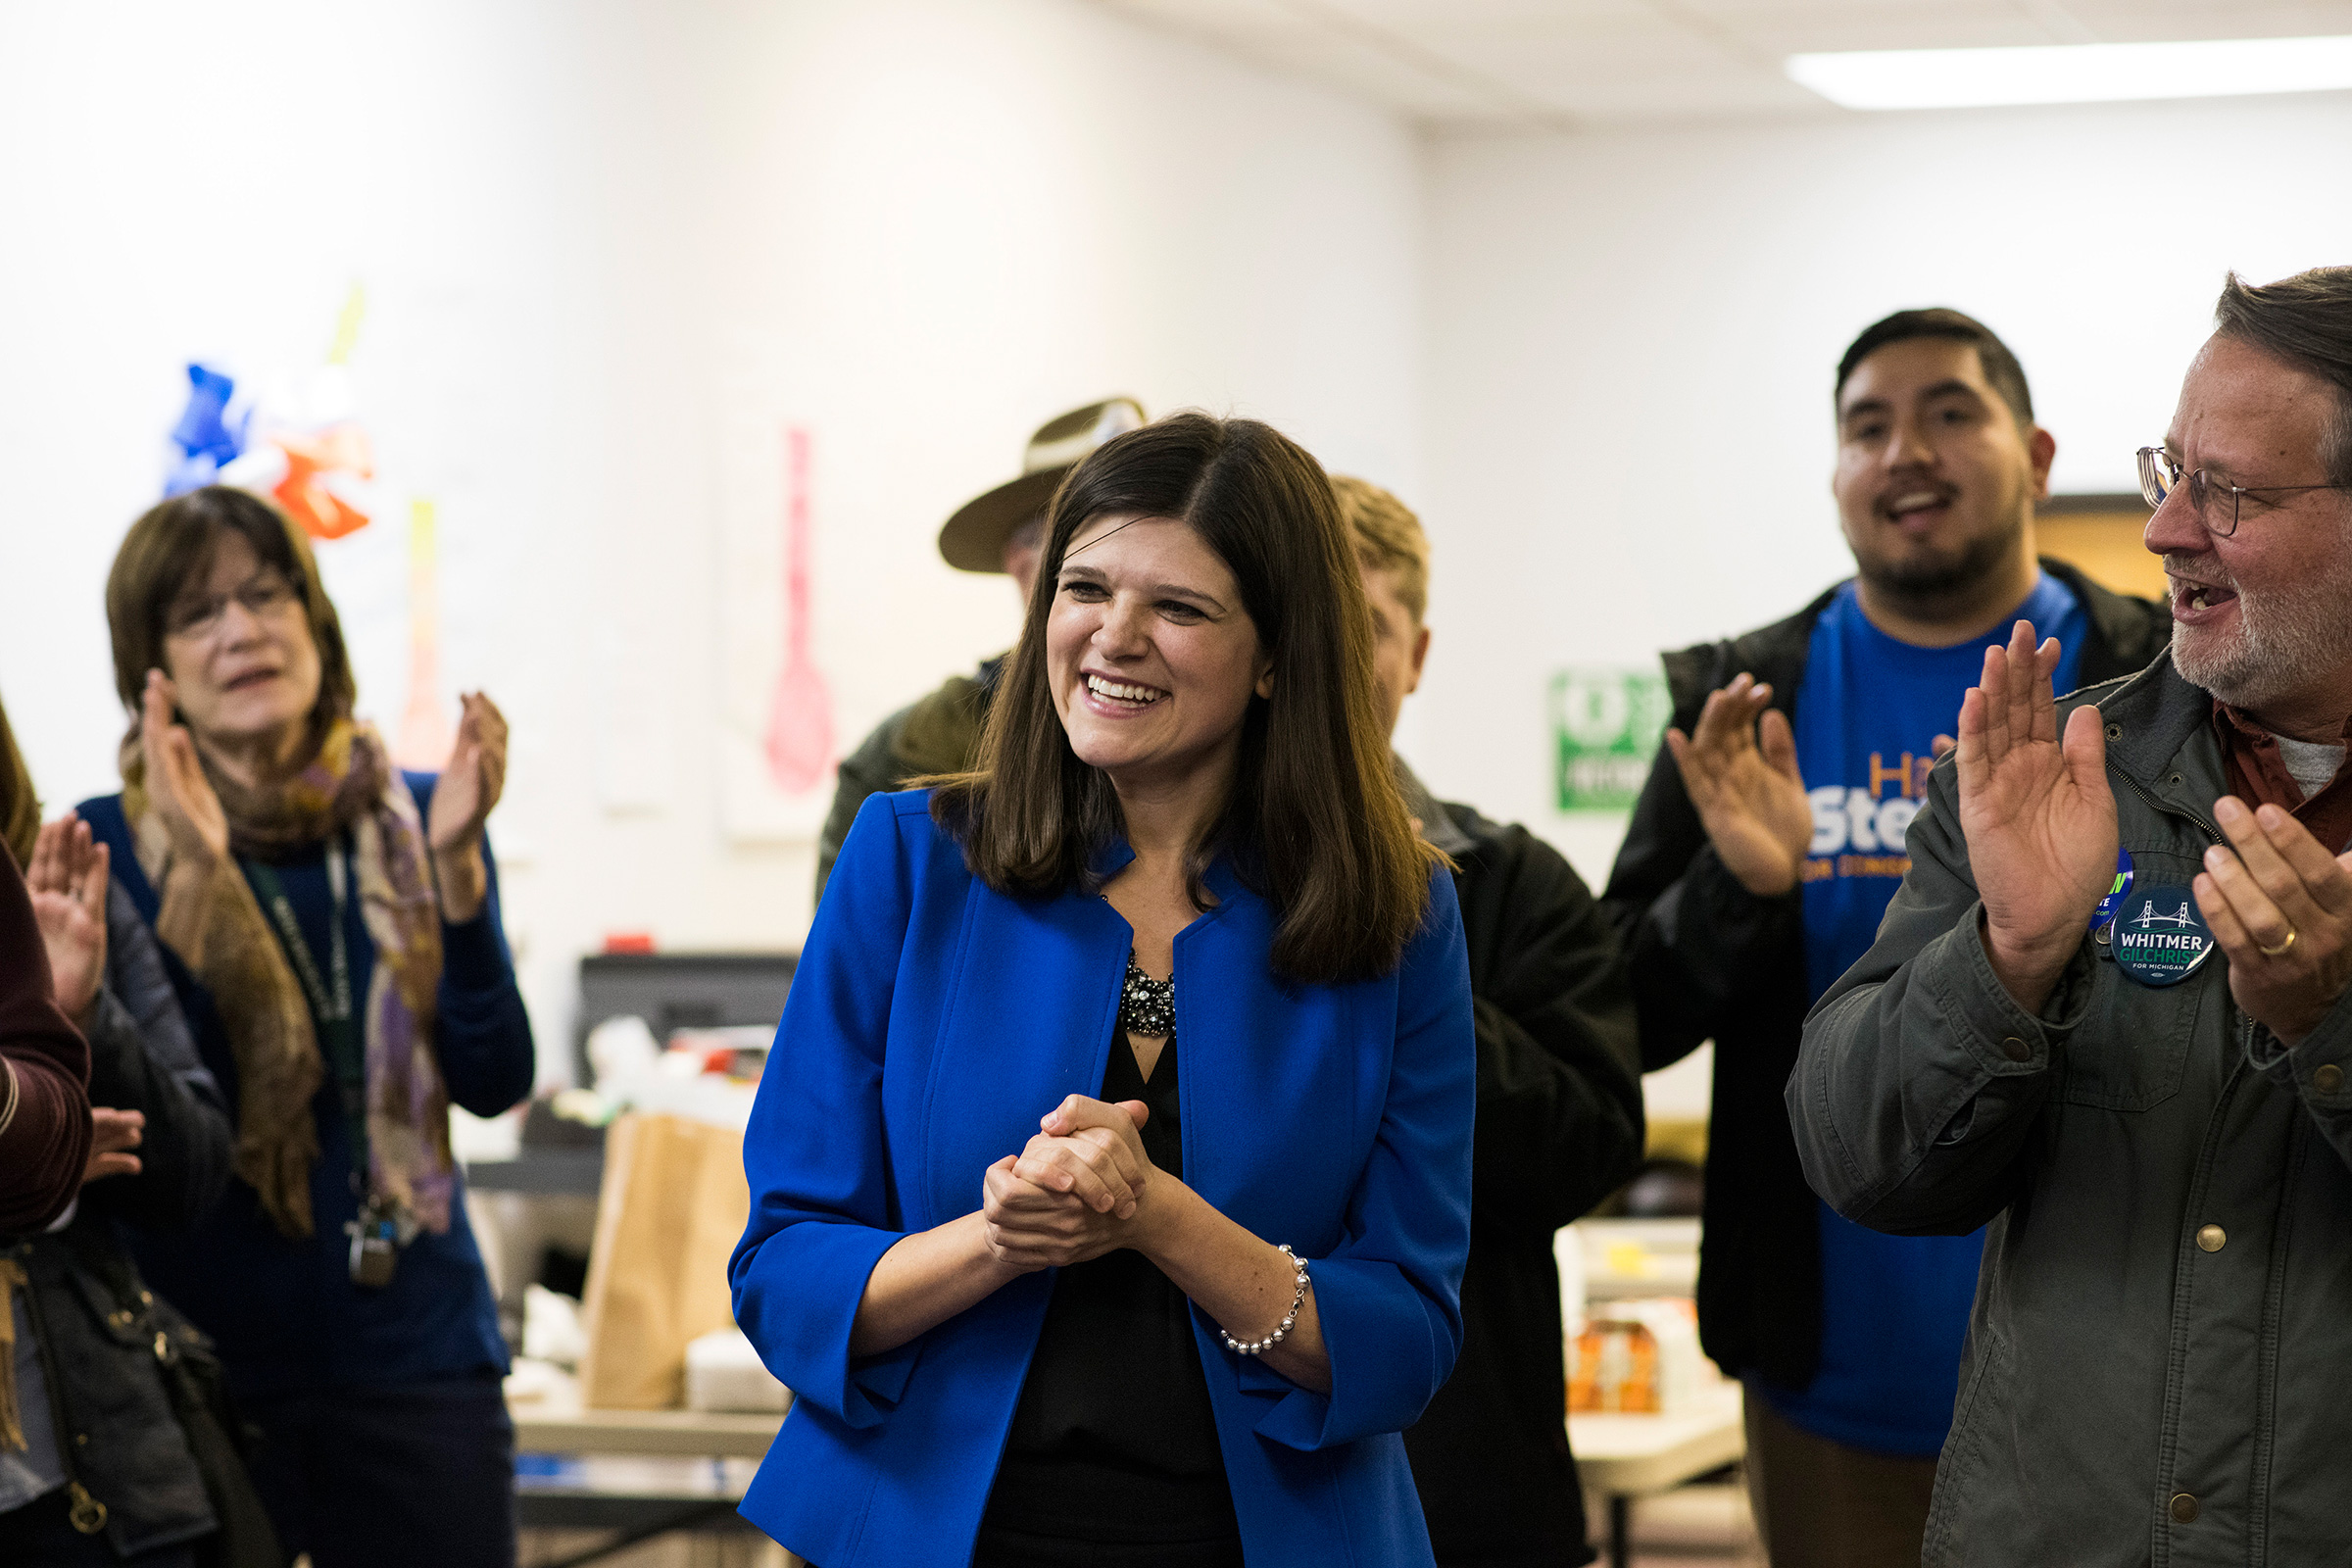 Stevens campaigns in her Michigan district during her 2018 congressional run